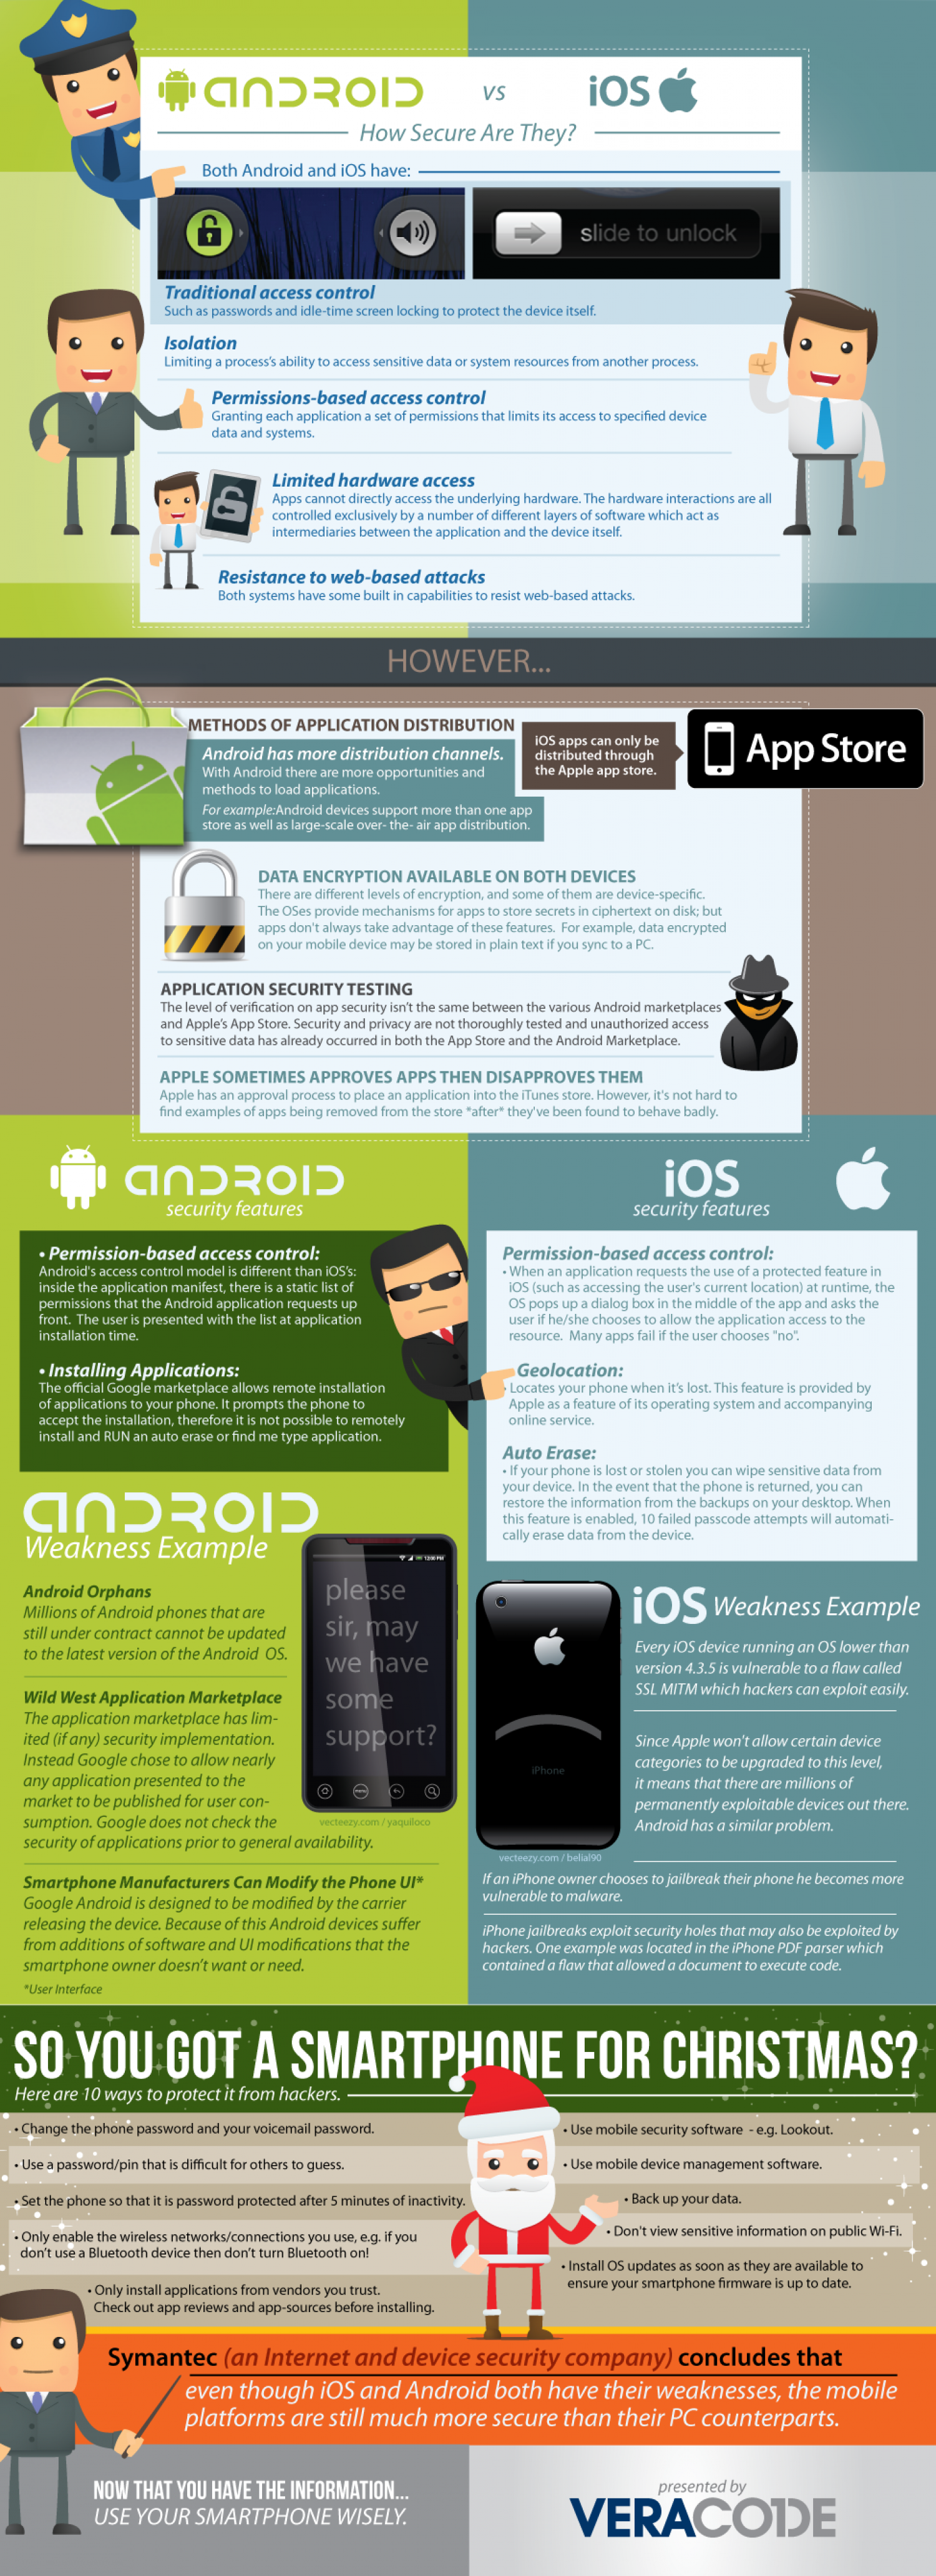 Android vs iOS: How Secure Are They? Infographic